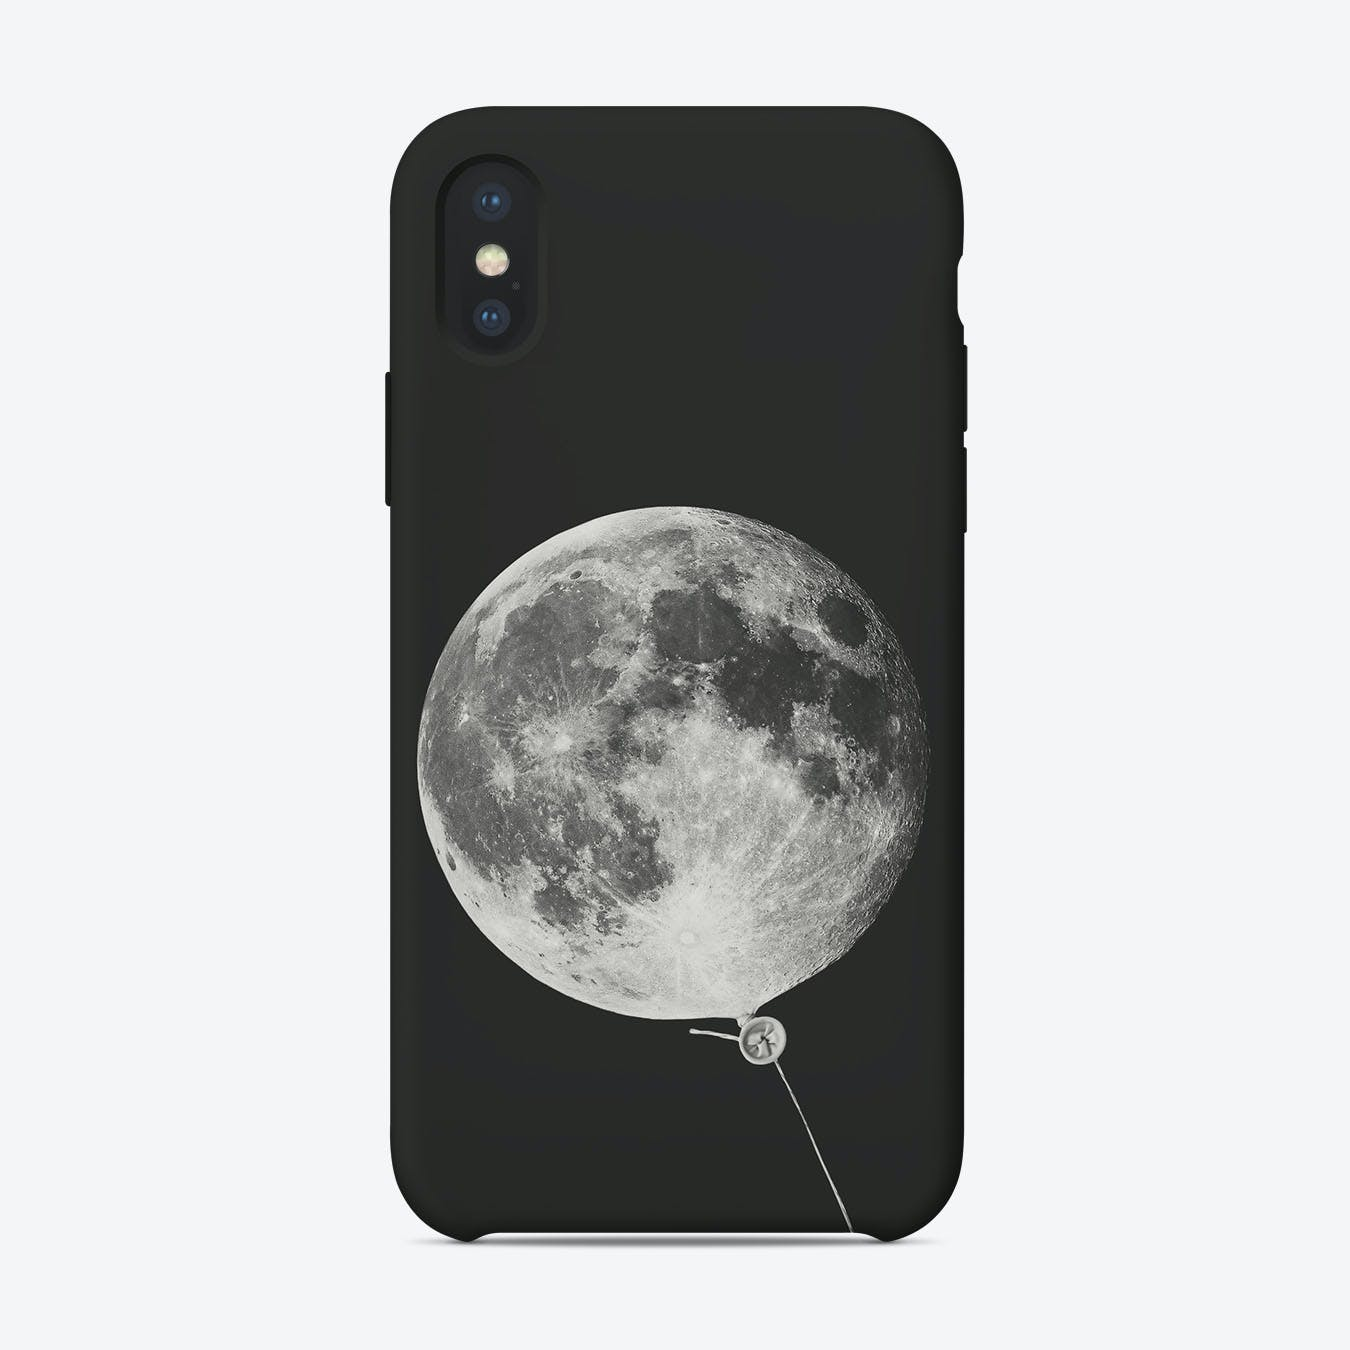 Moon Balloon Space iPhone Case